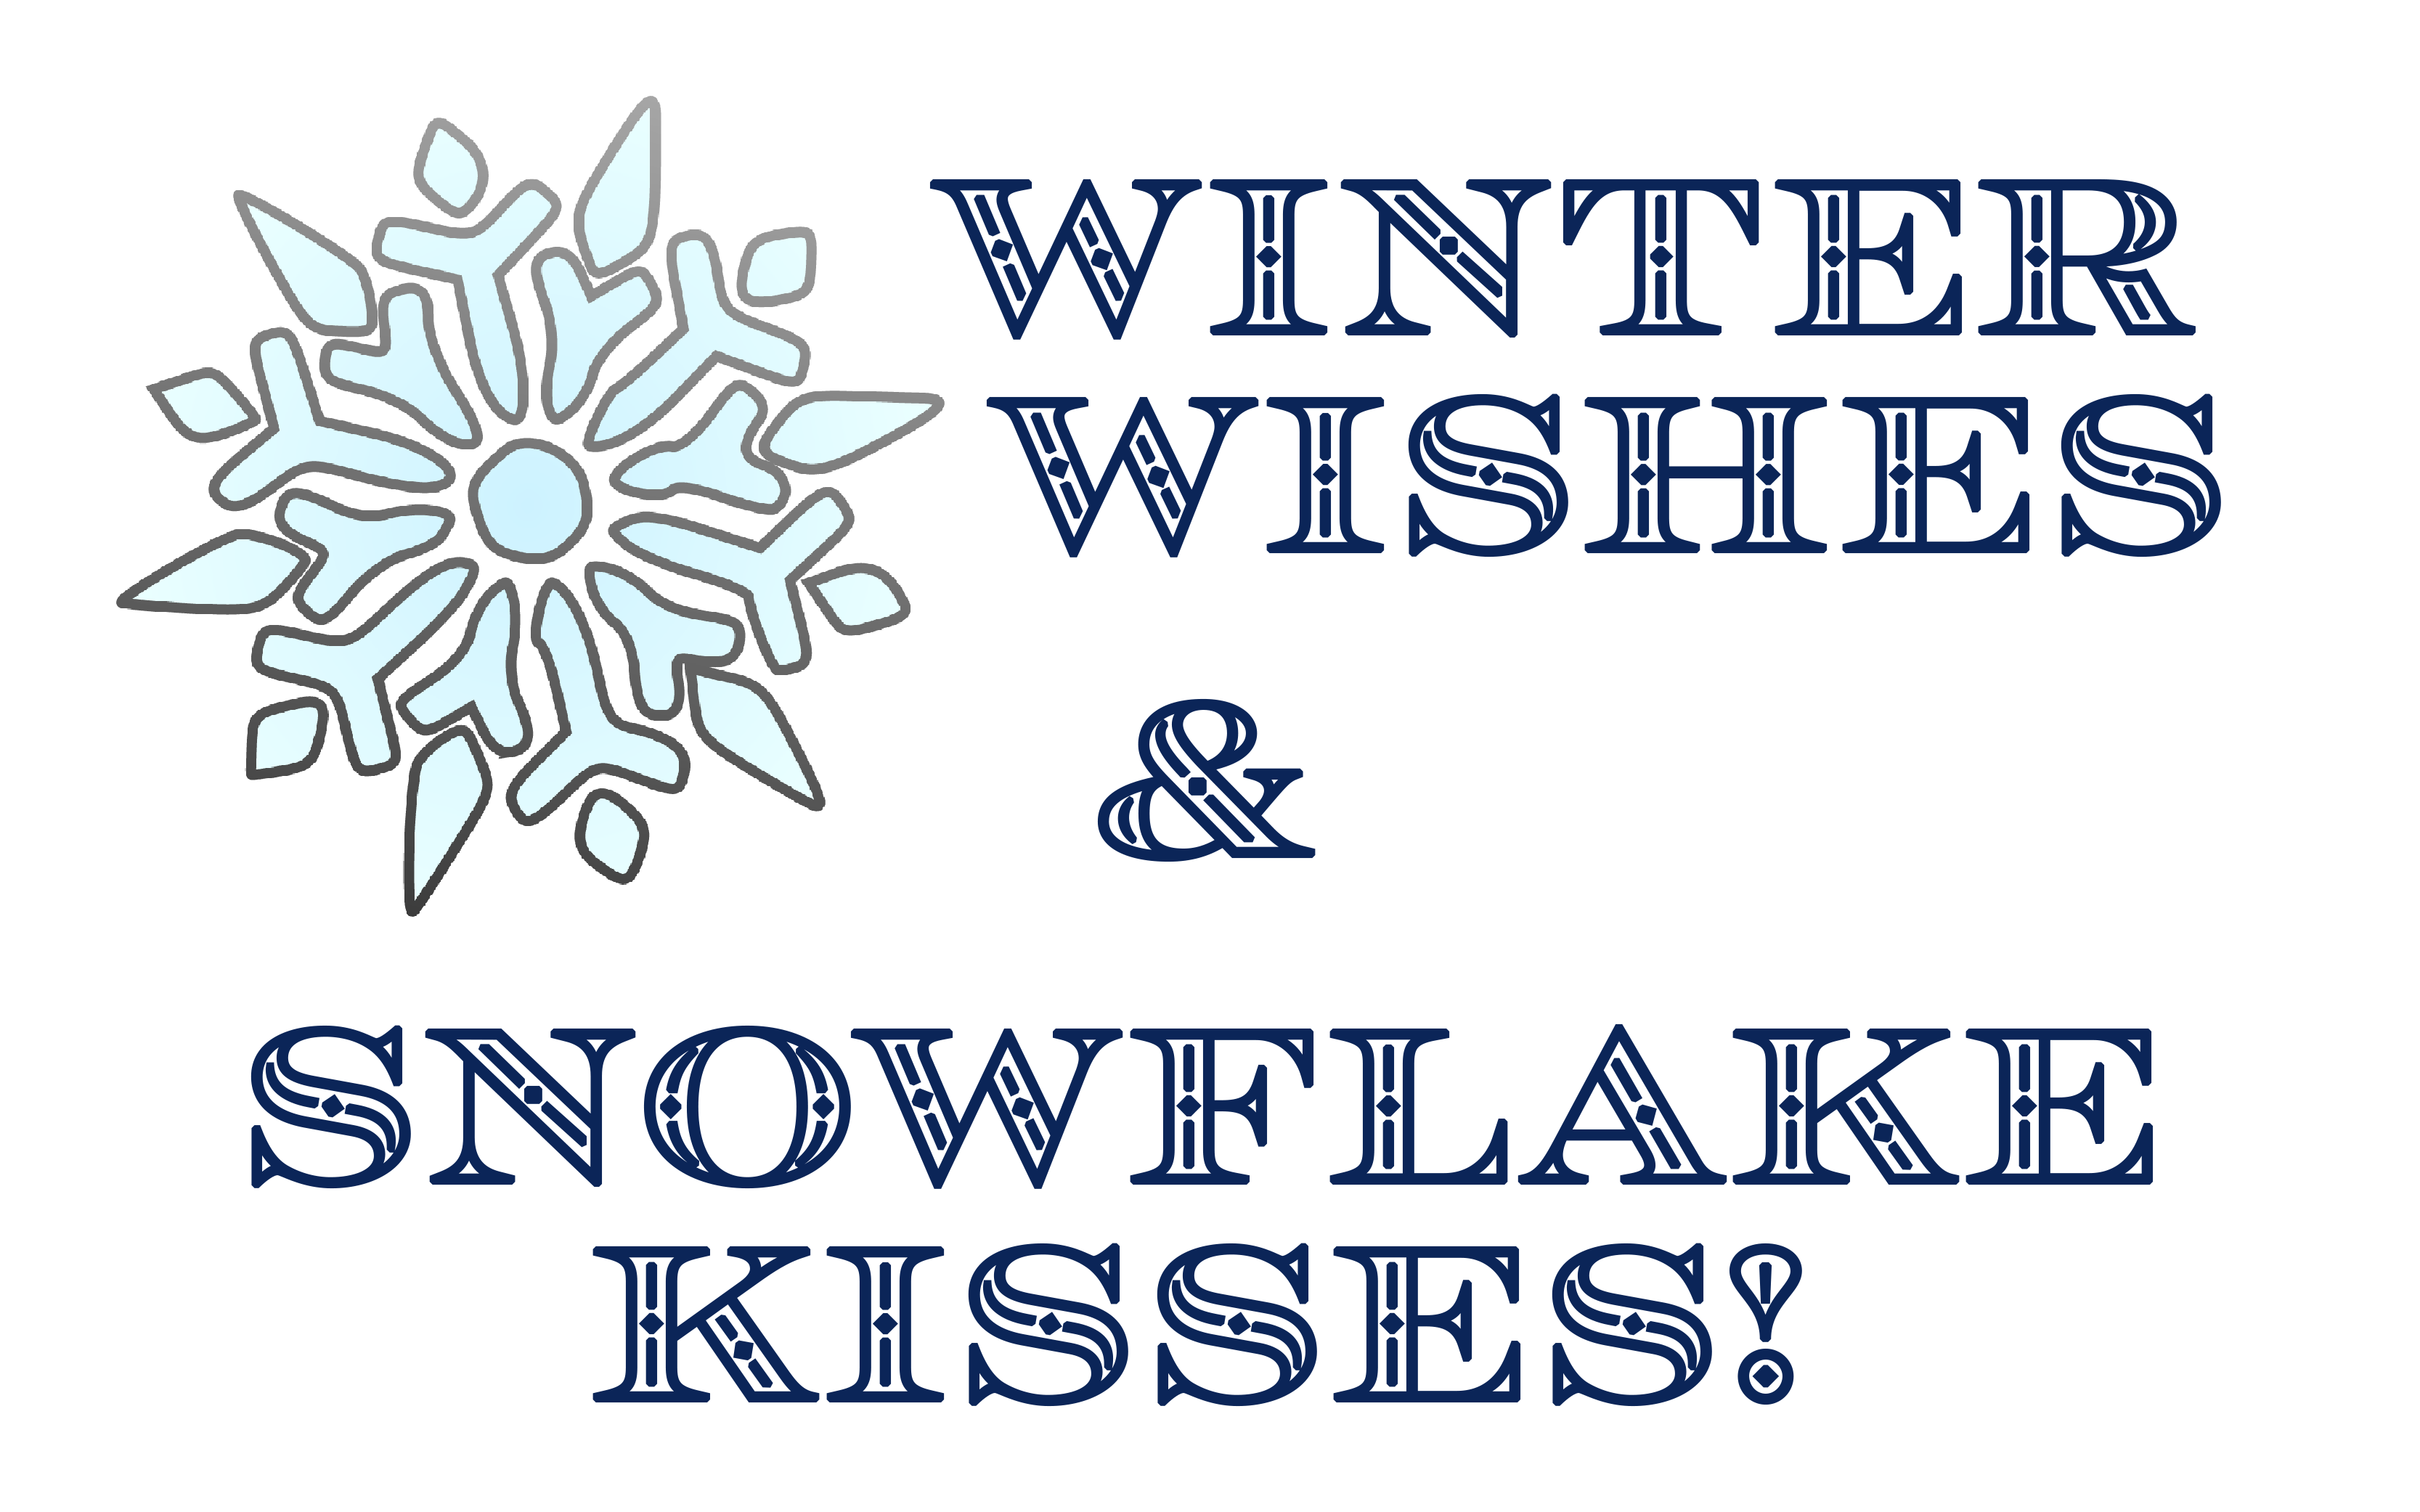 SnowflakeKisses.png